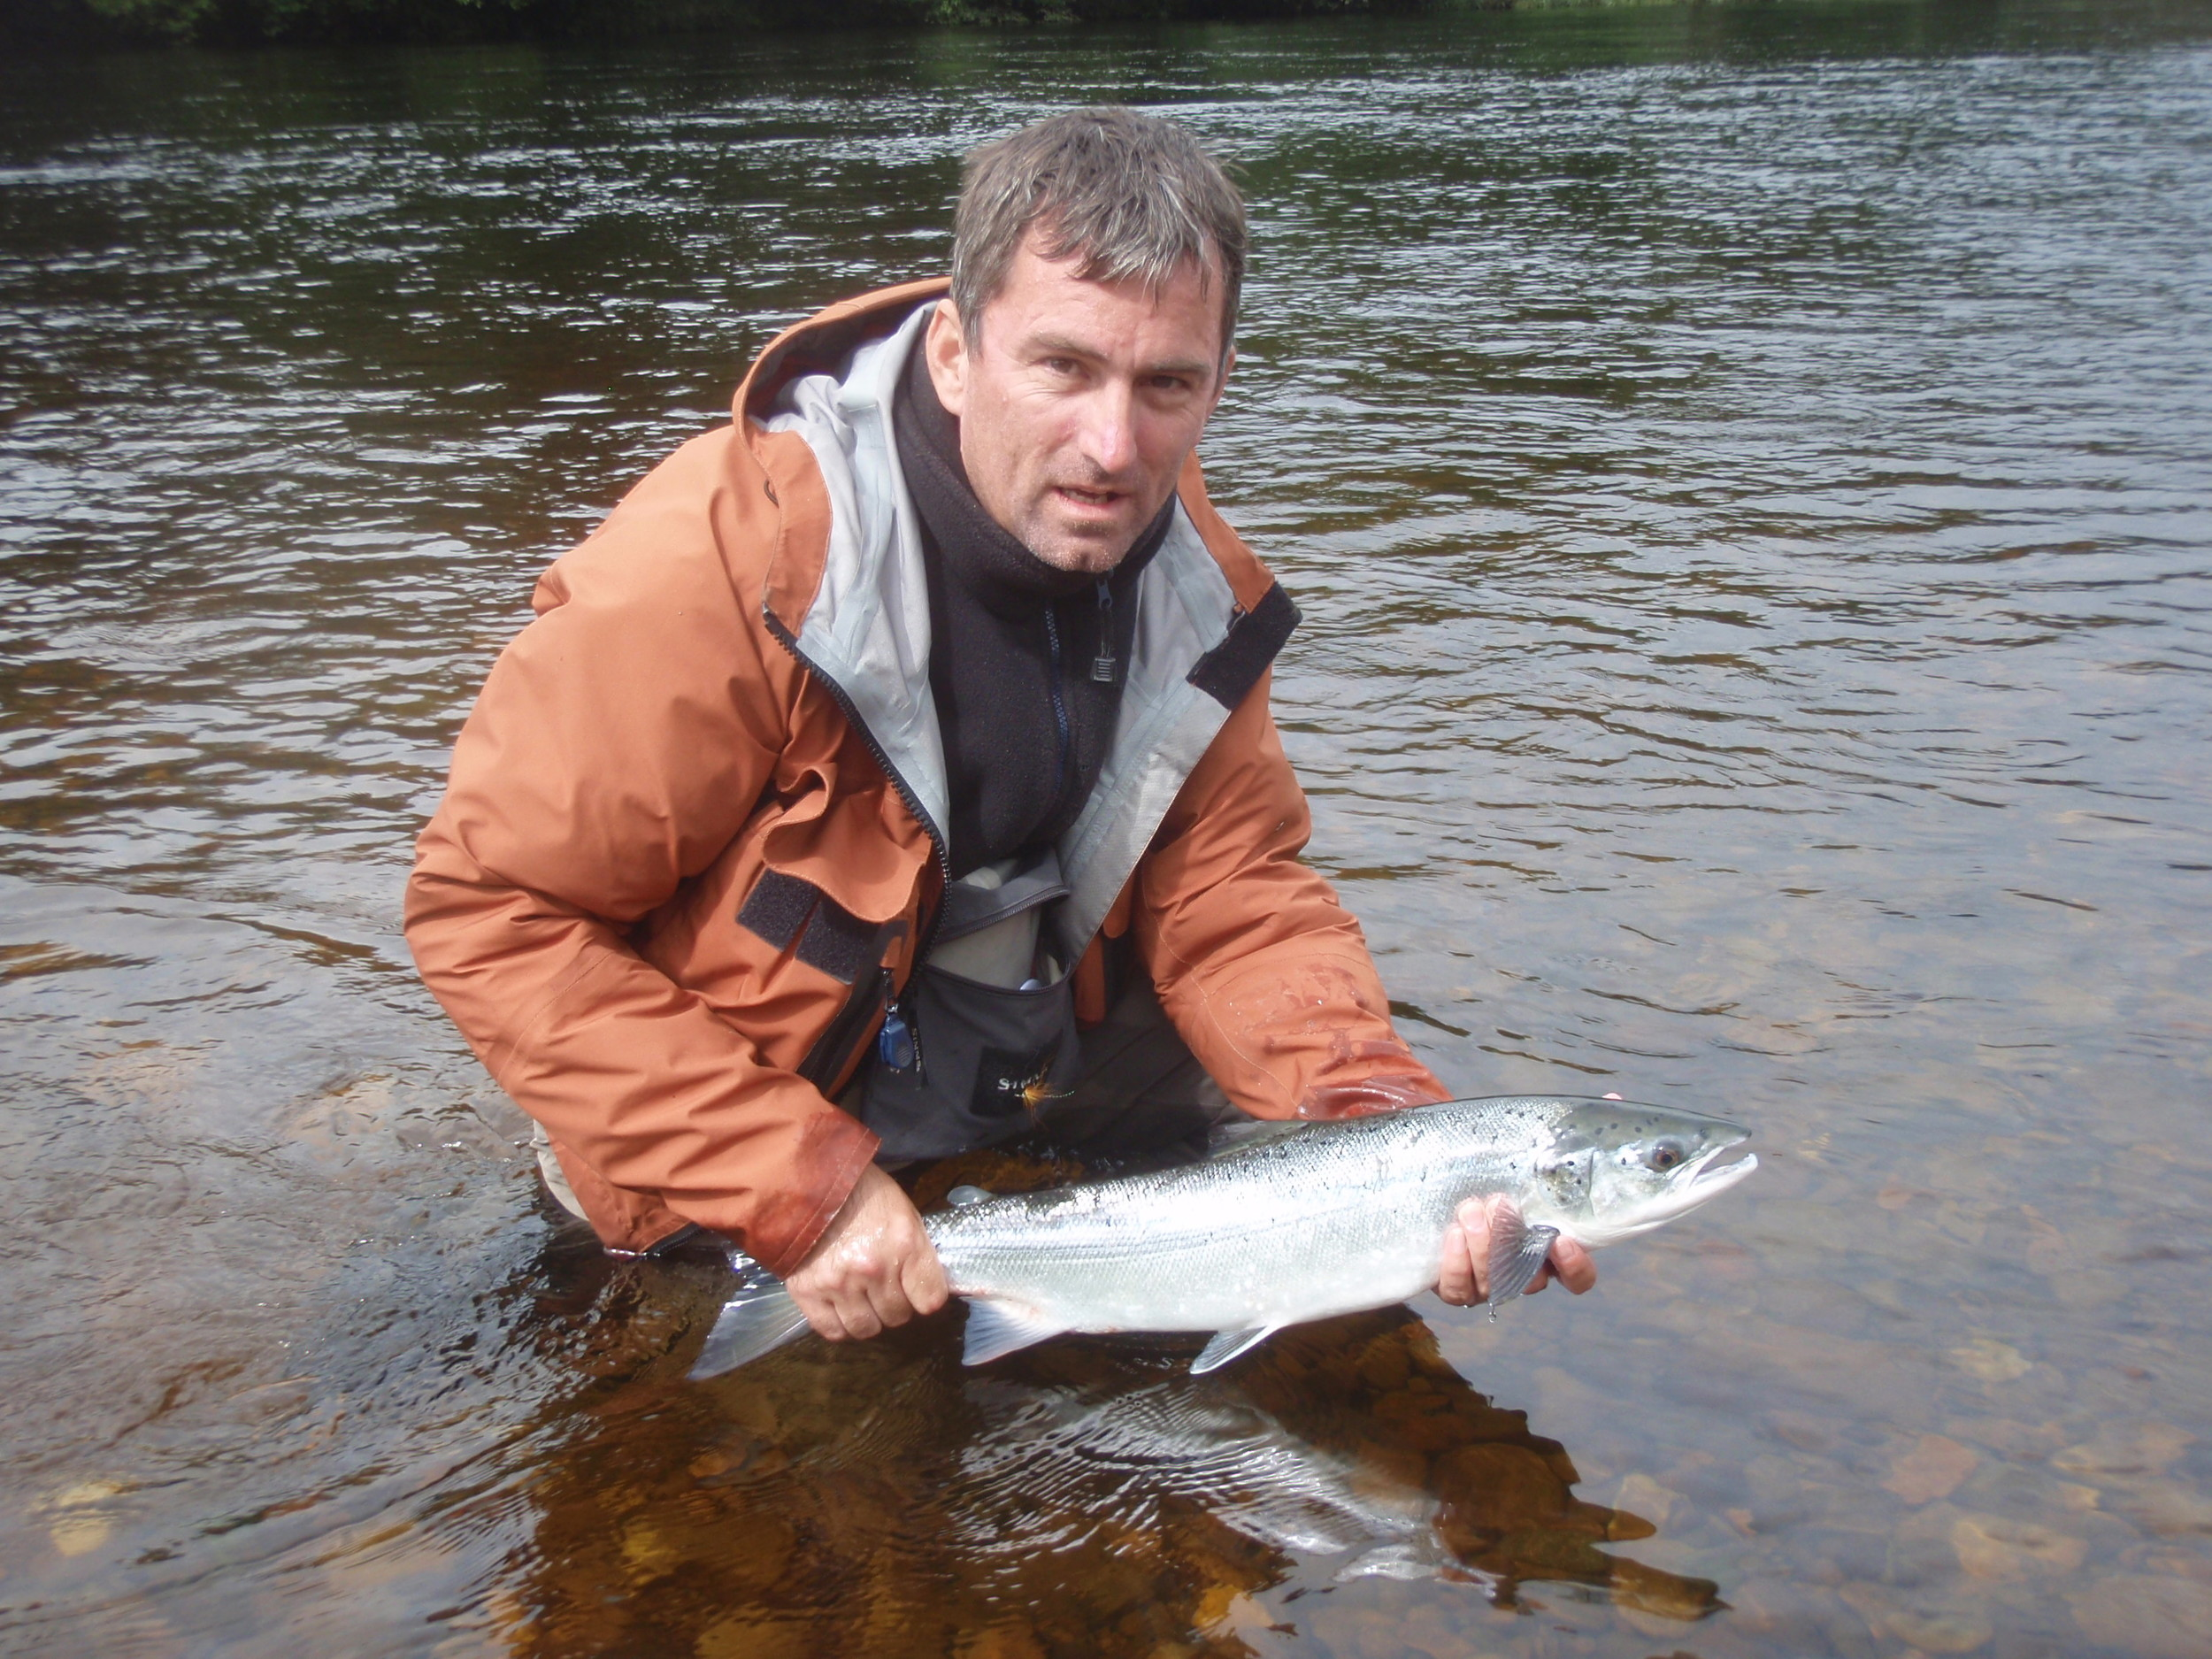 springer salmon, fish tay, scottish salmon fishing, river tay, scotland, perthshire, dalmarnock fishings, pitlochry, fly fishing, guided tours, fishing tours.jpeg